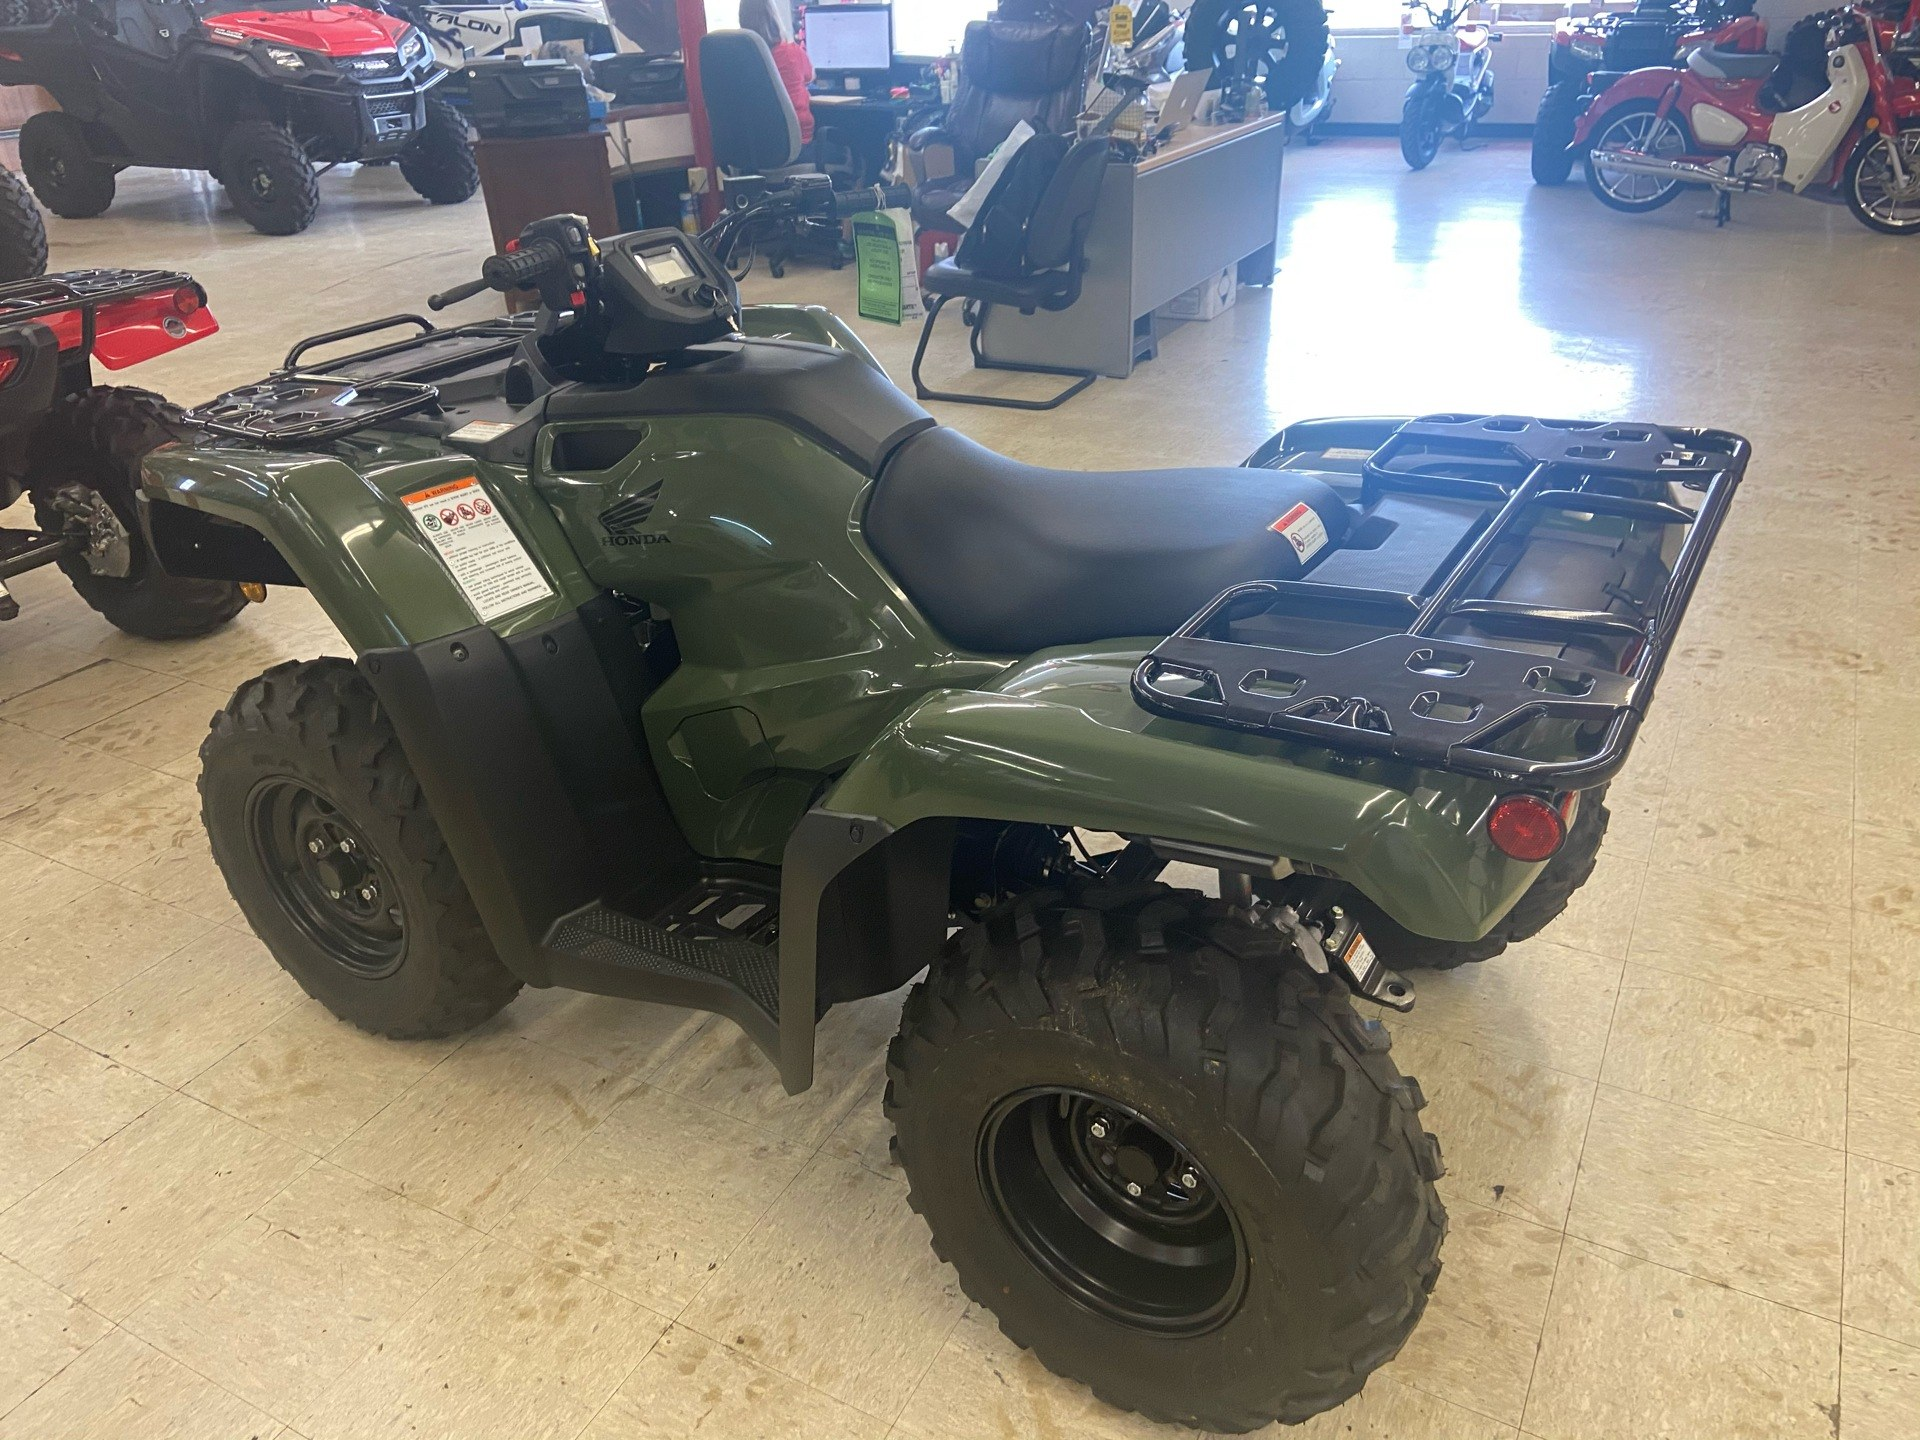 2020 Honda FourTrax Rancher ES in Greeneville, Tennessee - Photo 5